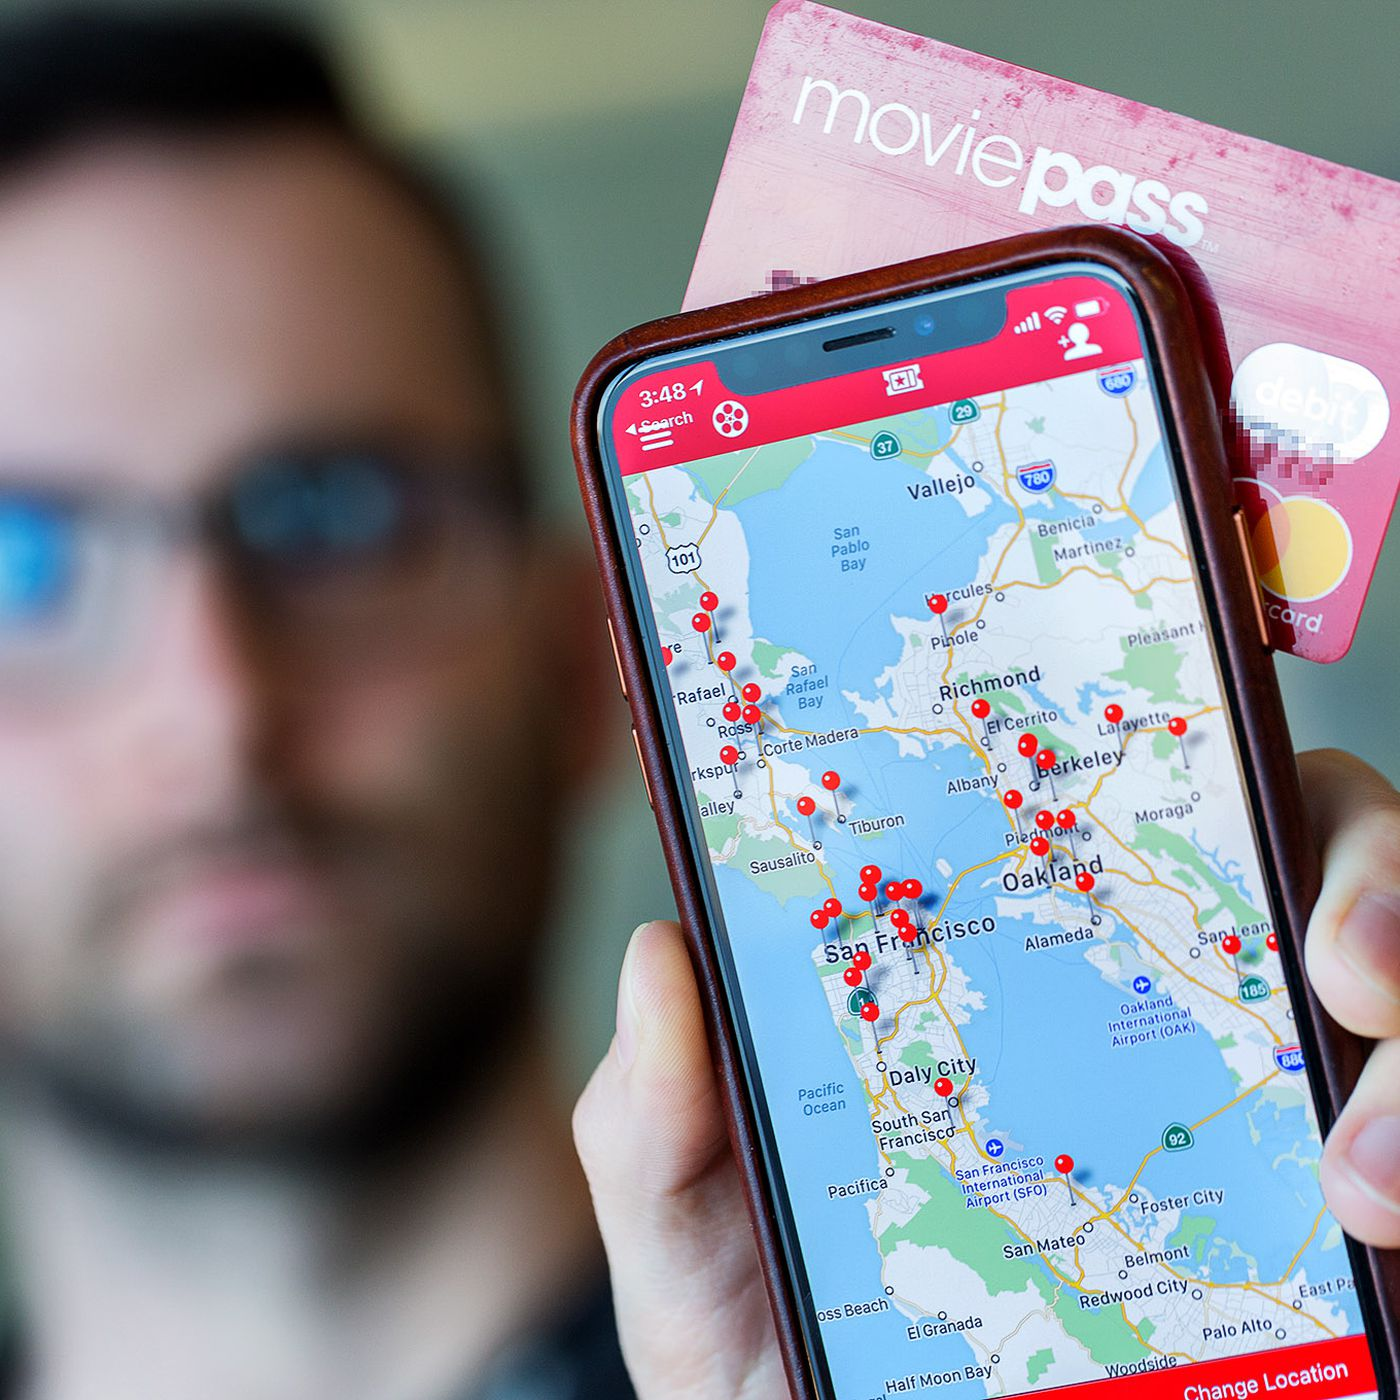 MoviePass is opting some users into its new plan even after